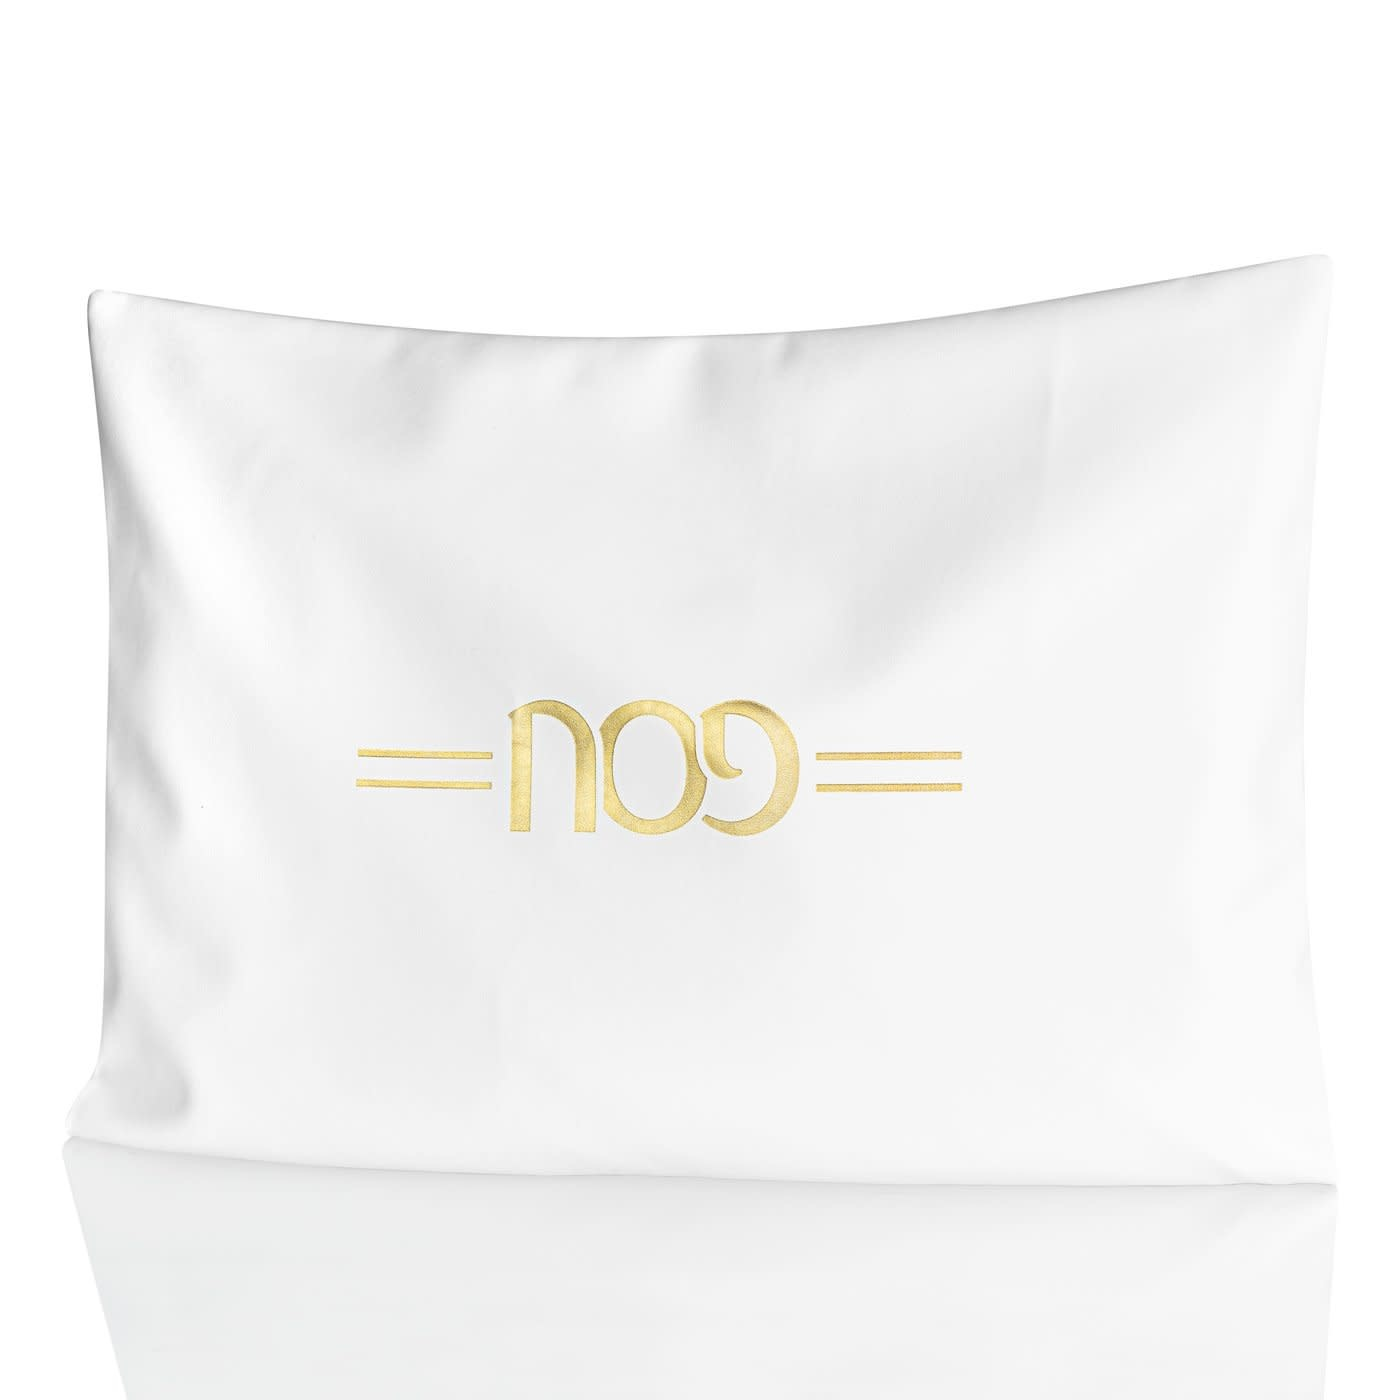 Leather Pillow Case White with Gold